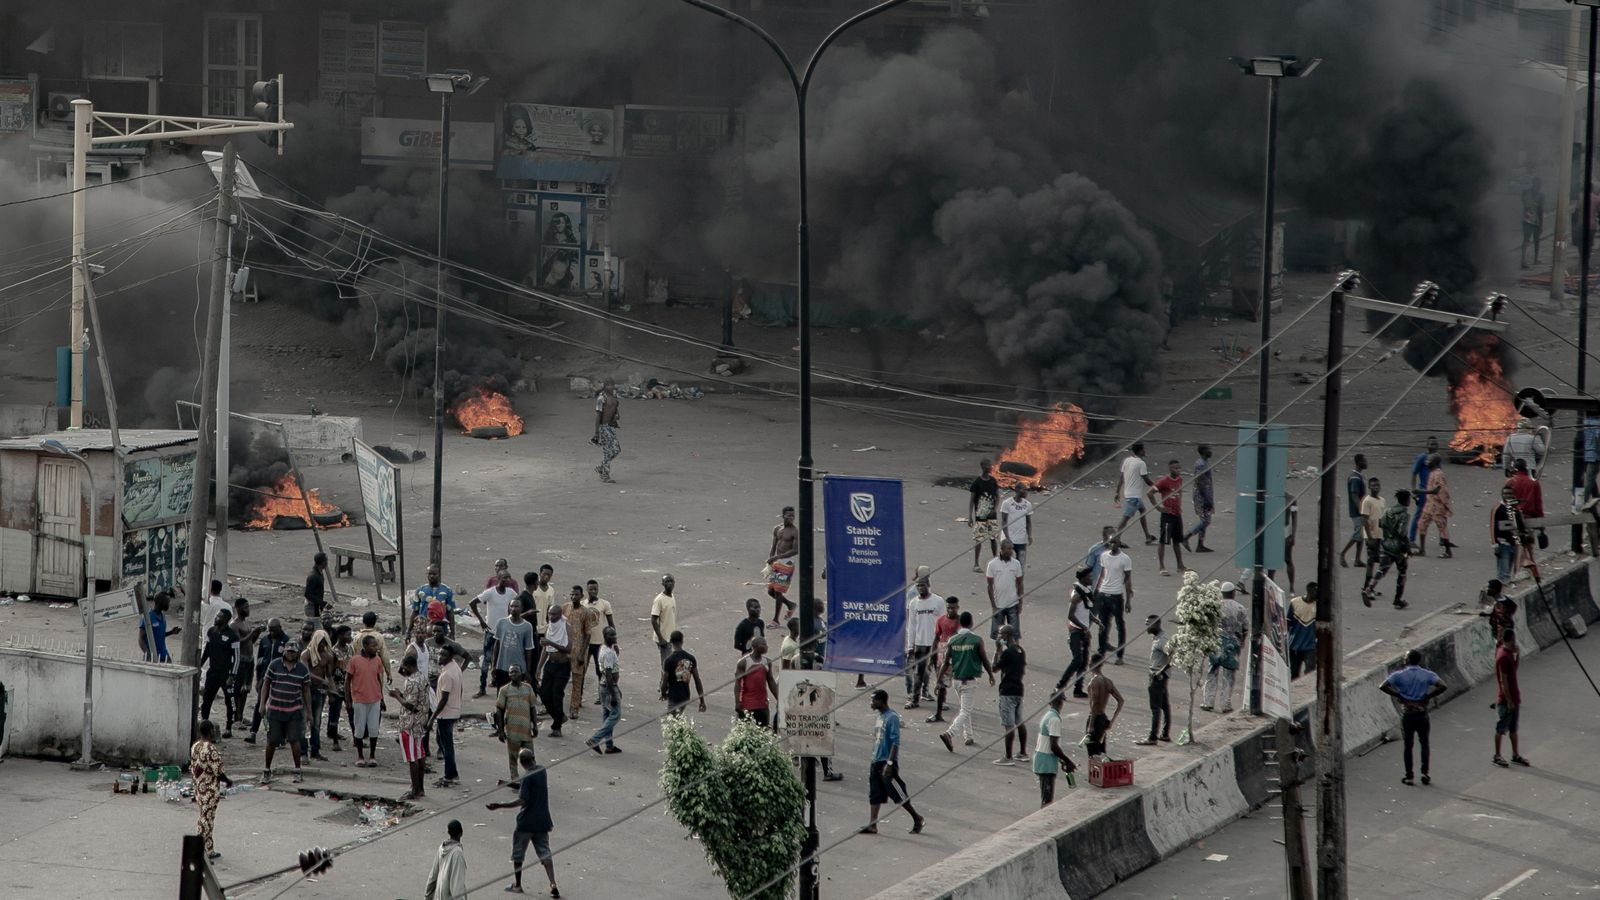 At least 12 people were killed when government forces fired upon protesters during anti-police brutality demonstrations in Nigeria, Amnesty International has claimed